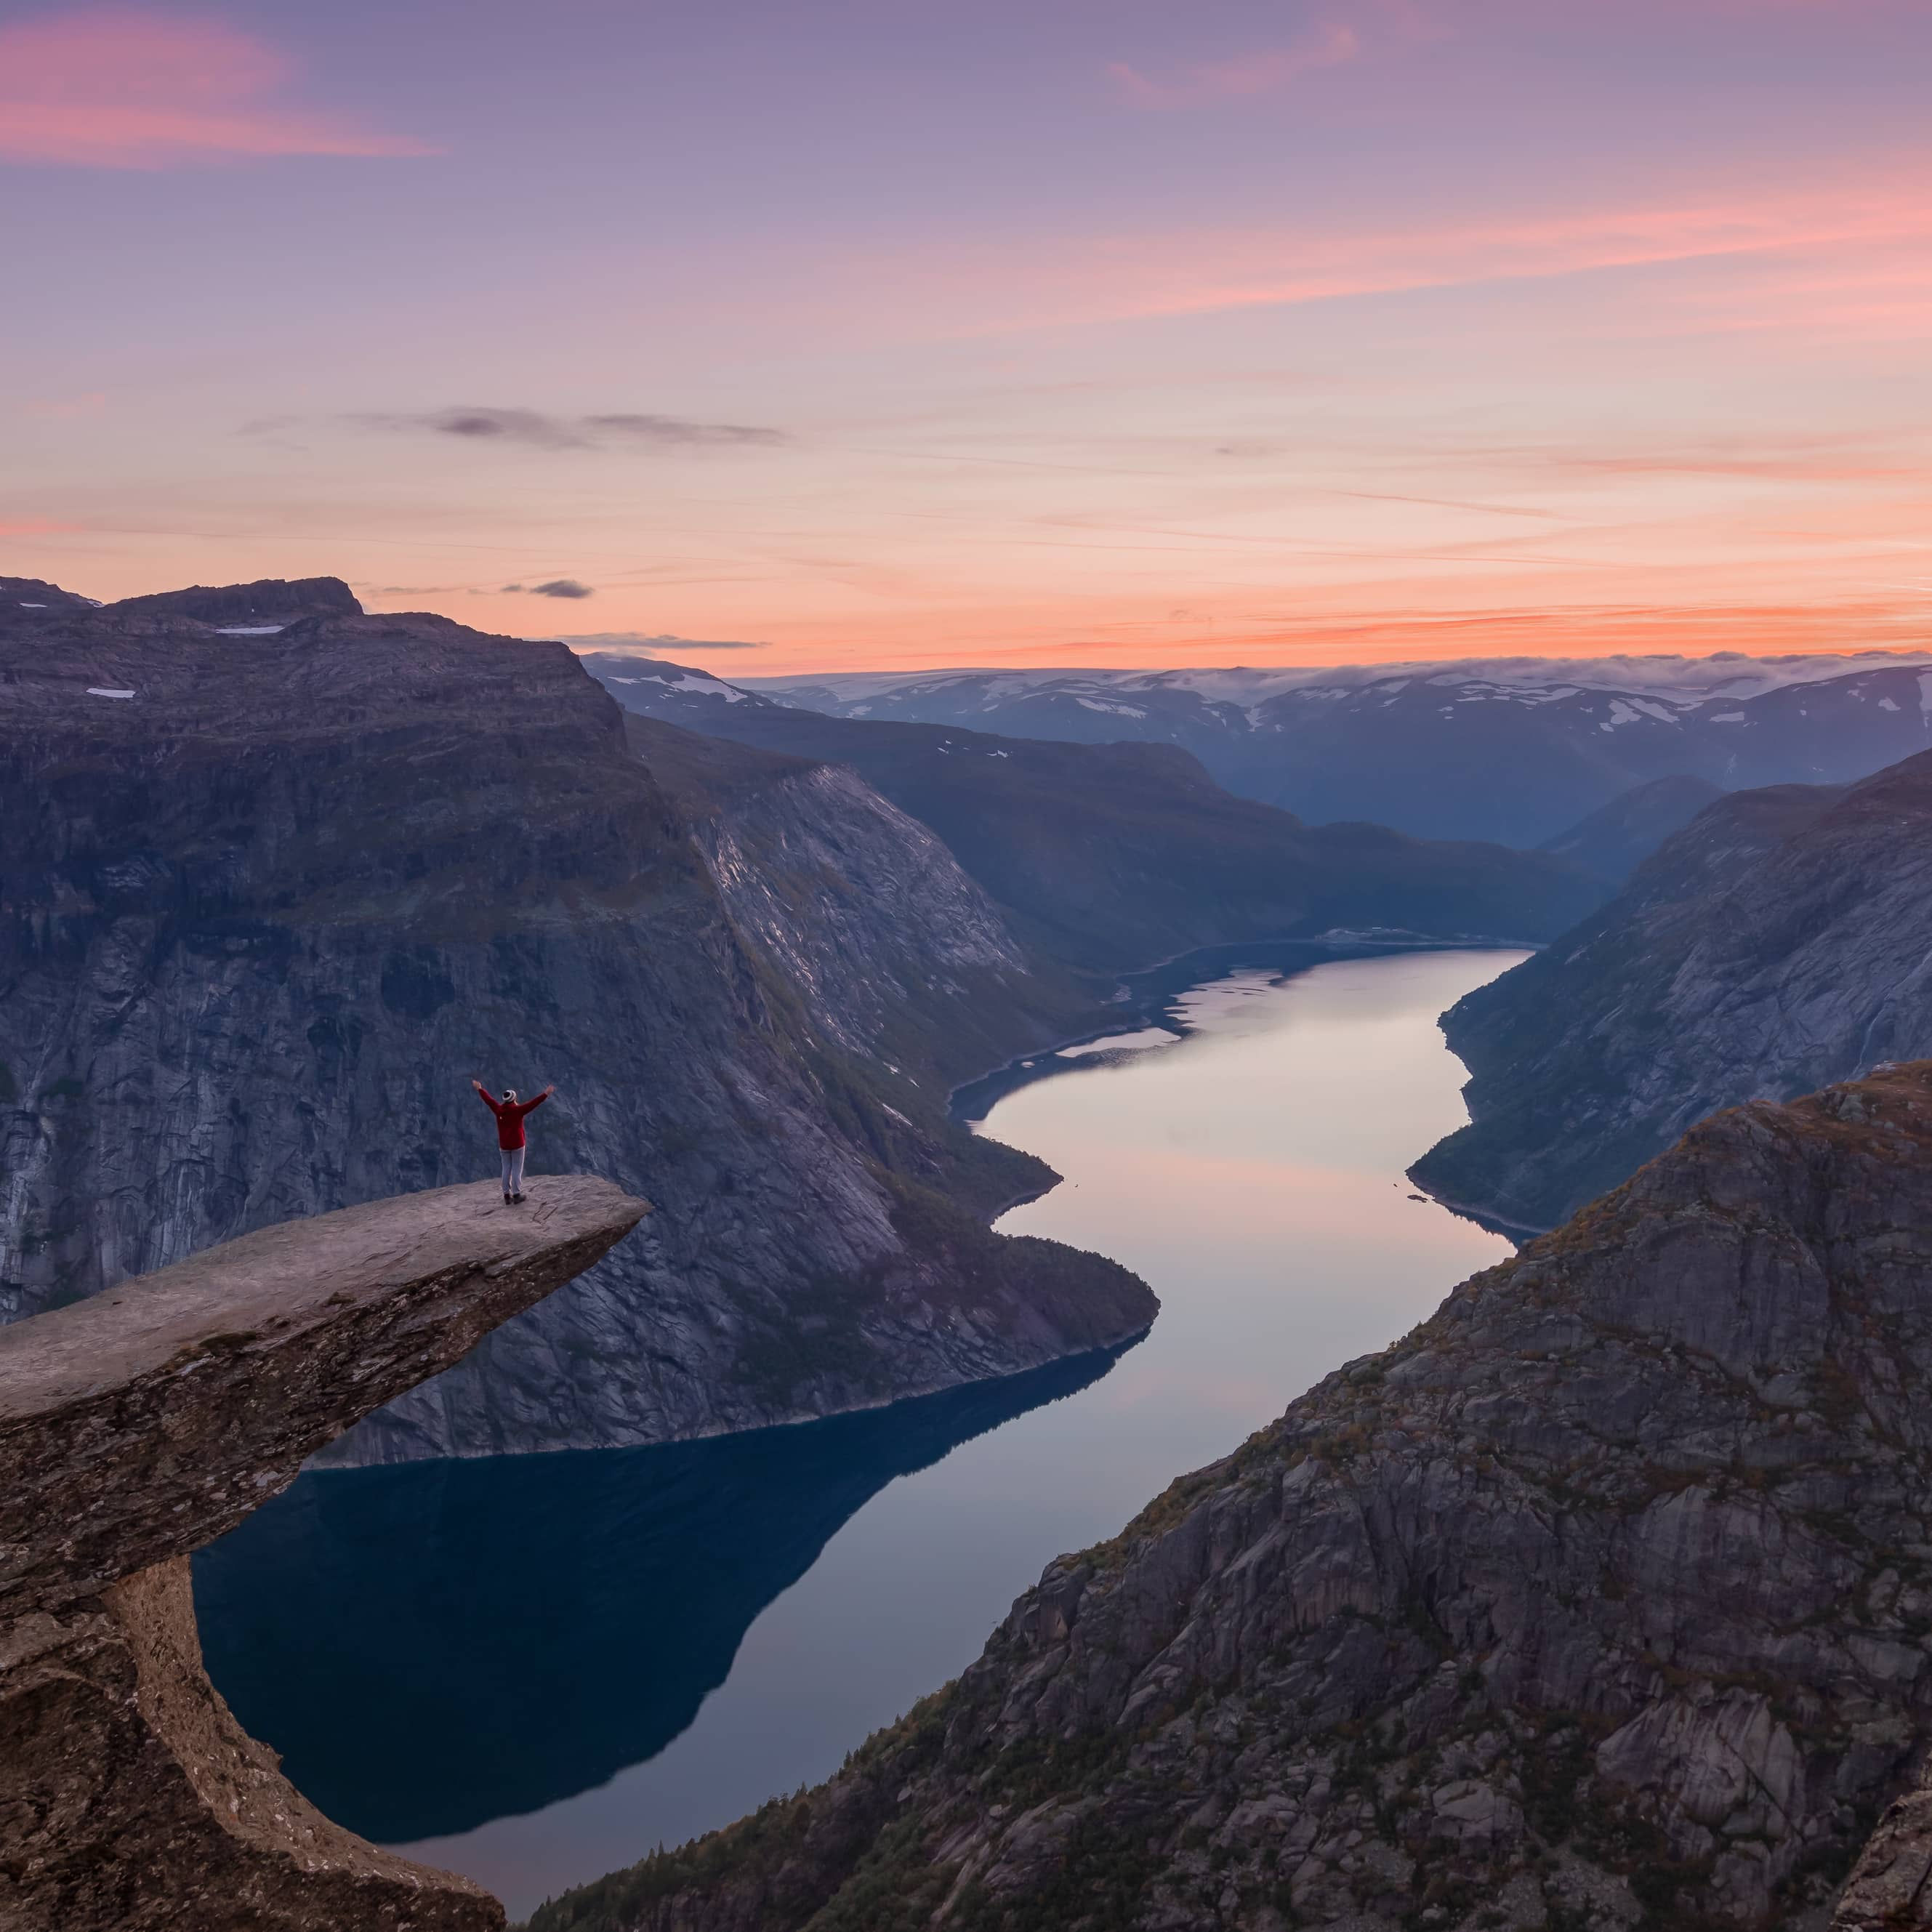 Person standing at Trolltunga overlooking the fjord and surrounding mountain landscape at sunset.